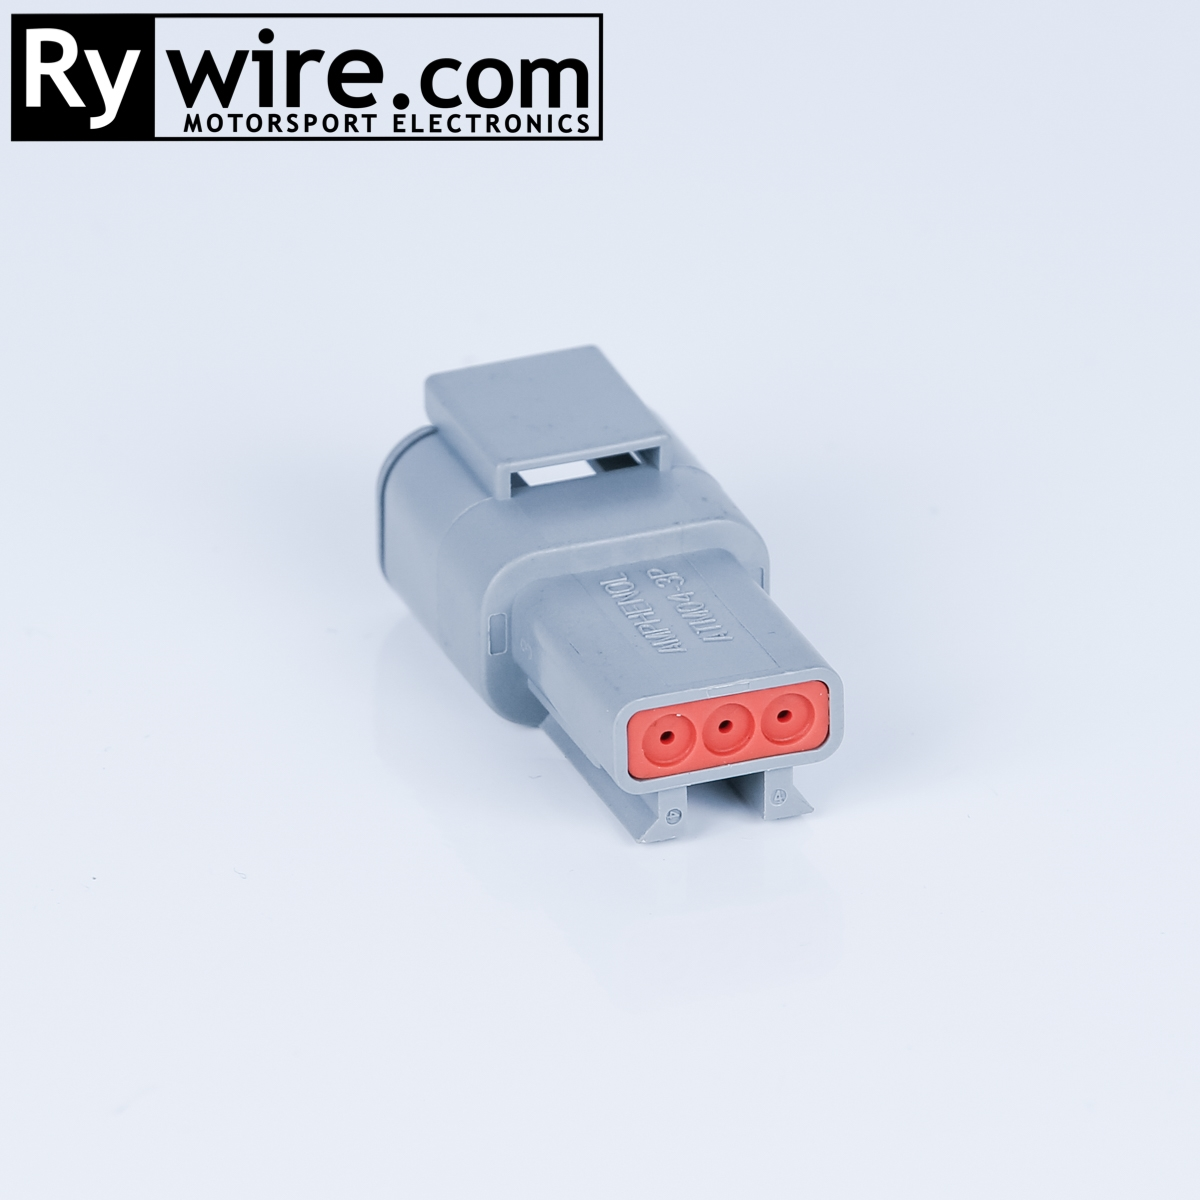 Rywire Ry Atm04 3p